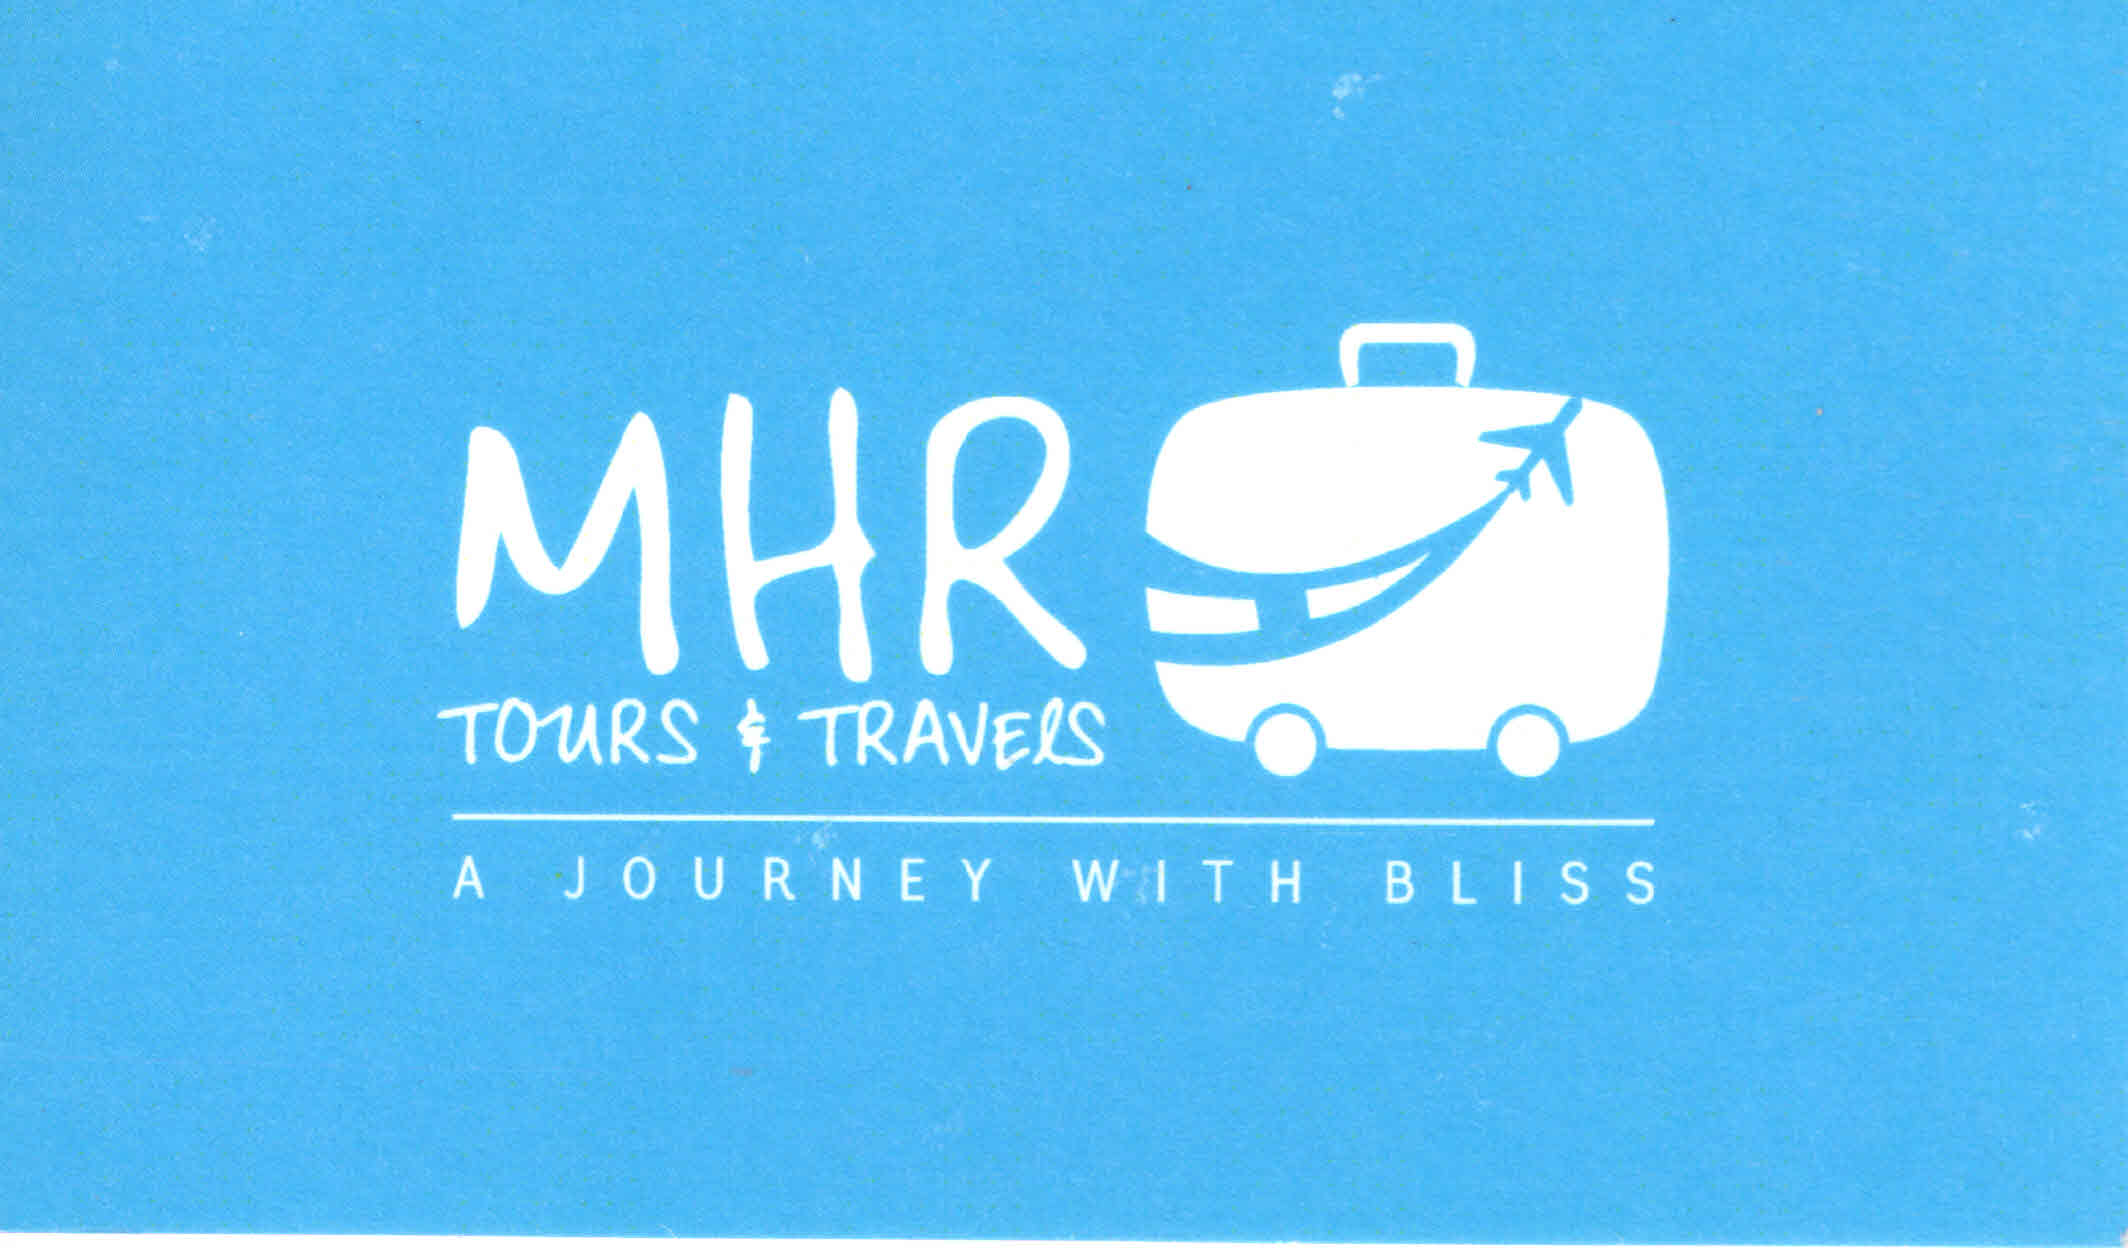 Tours And Travels In Virar